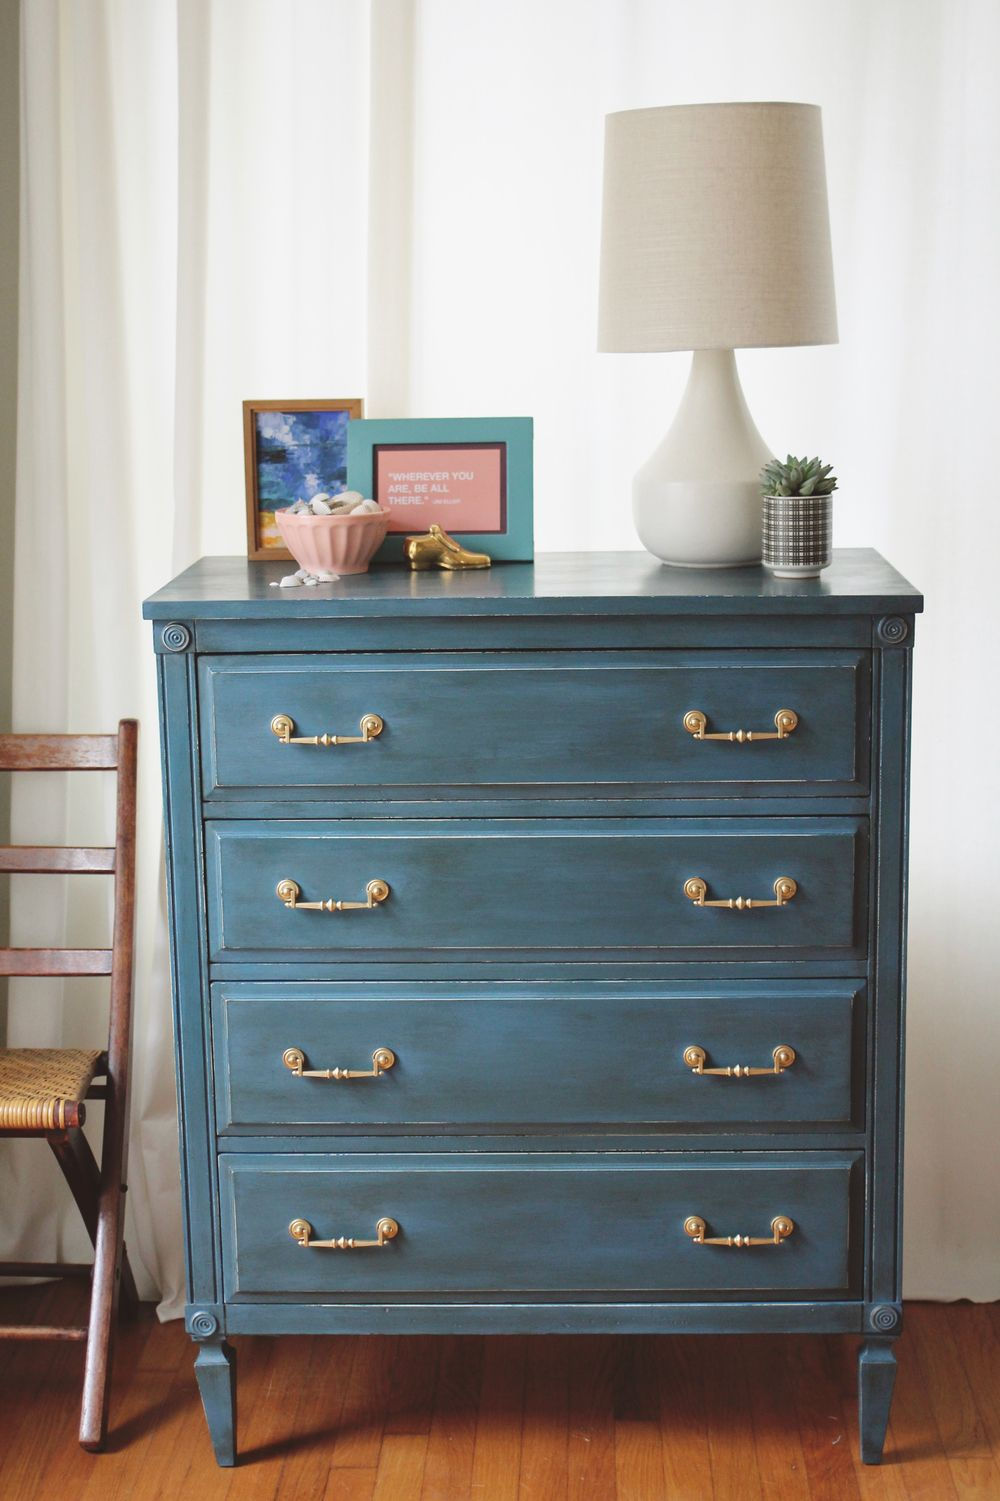 Annie Sloan Colors I Love Aubusson Blue Dresser A Simpler Design A Hub For All Things Creative Stylist Photography Graphic Design Home Decor Annie Sloan Painted Furniture